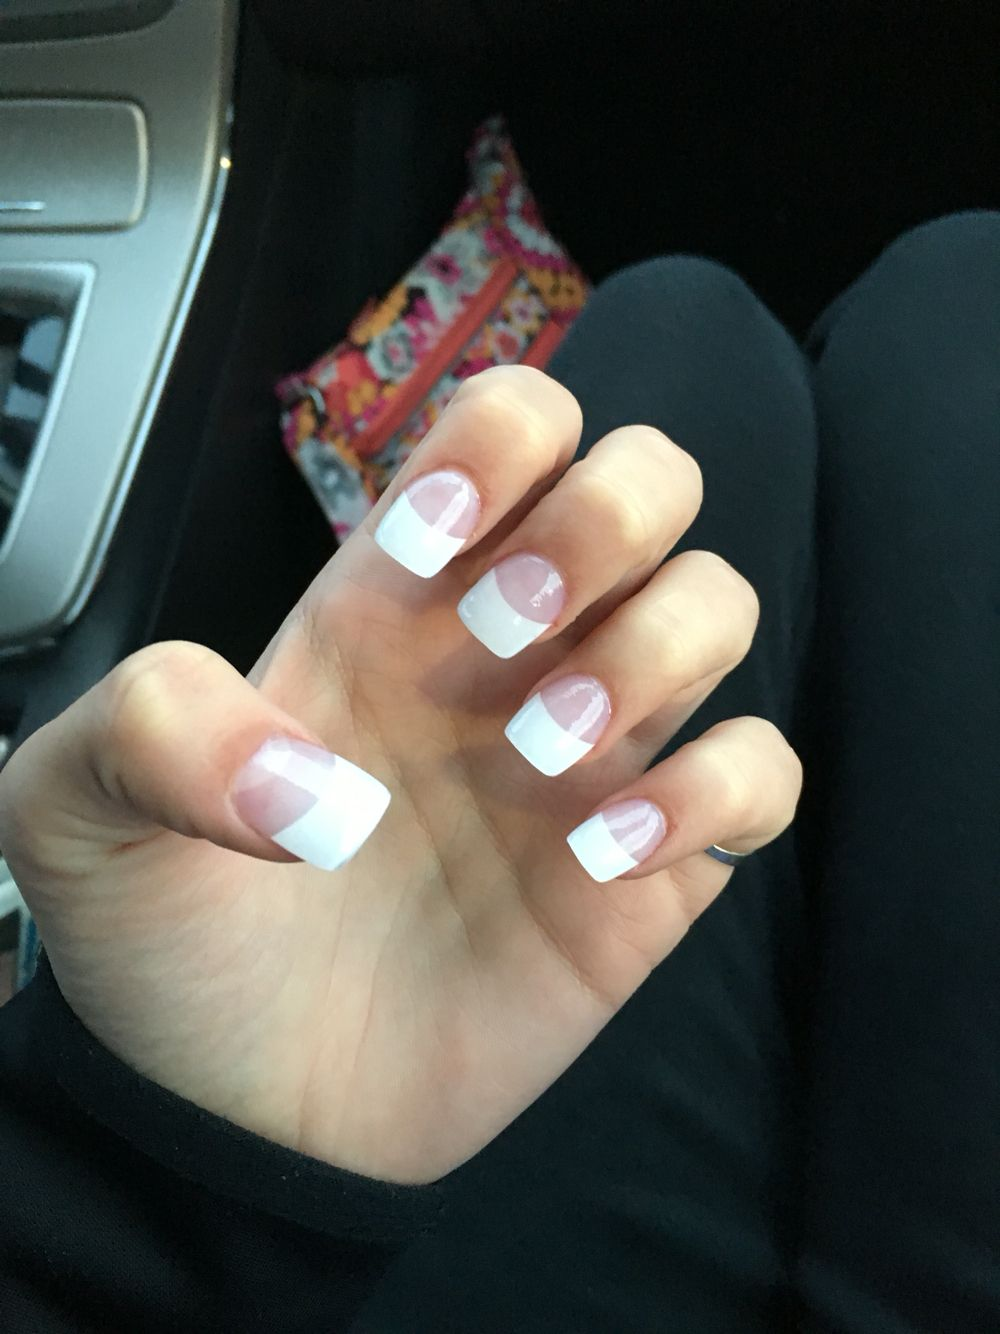 Rounded Square French Tip Acrylic Nails Great For A Natural Stylish Look In The S French Tip Acrylic Nails French Manicure Acrylic Nails French Acrylic Nails